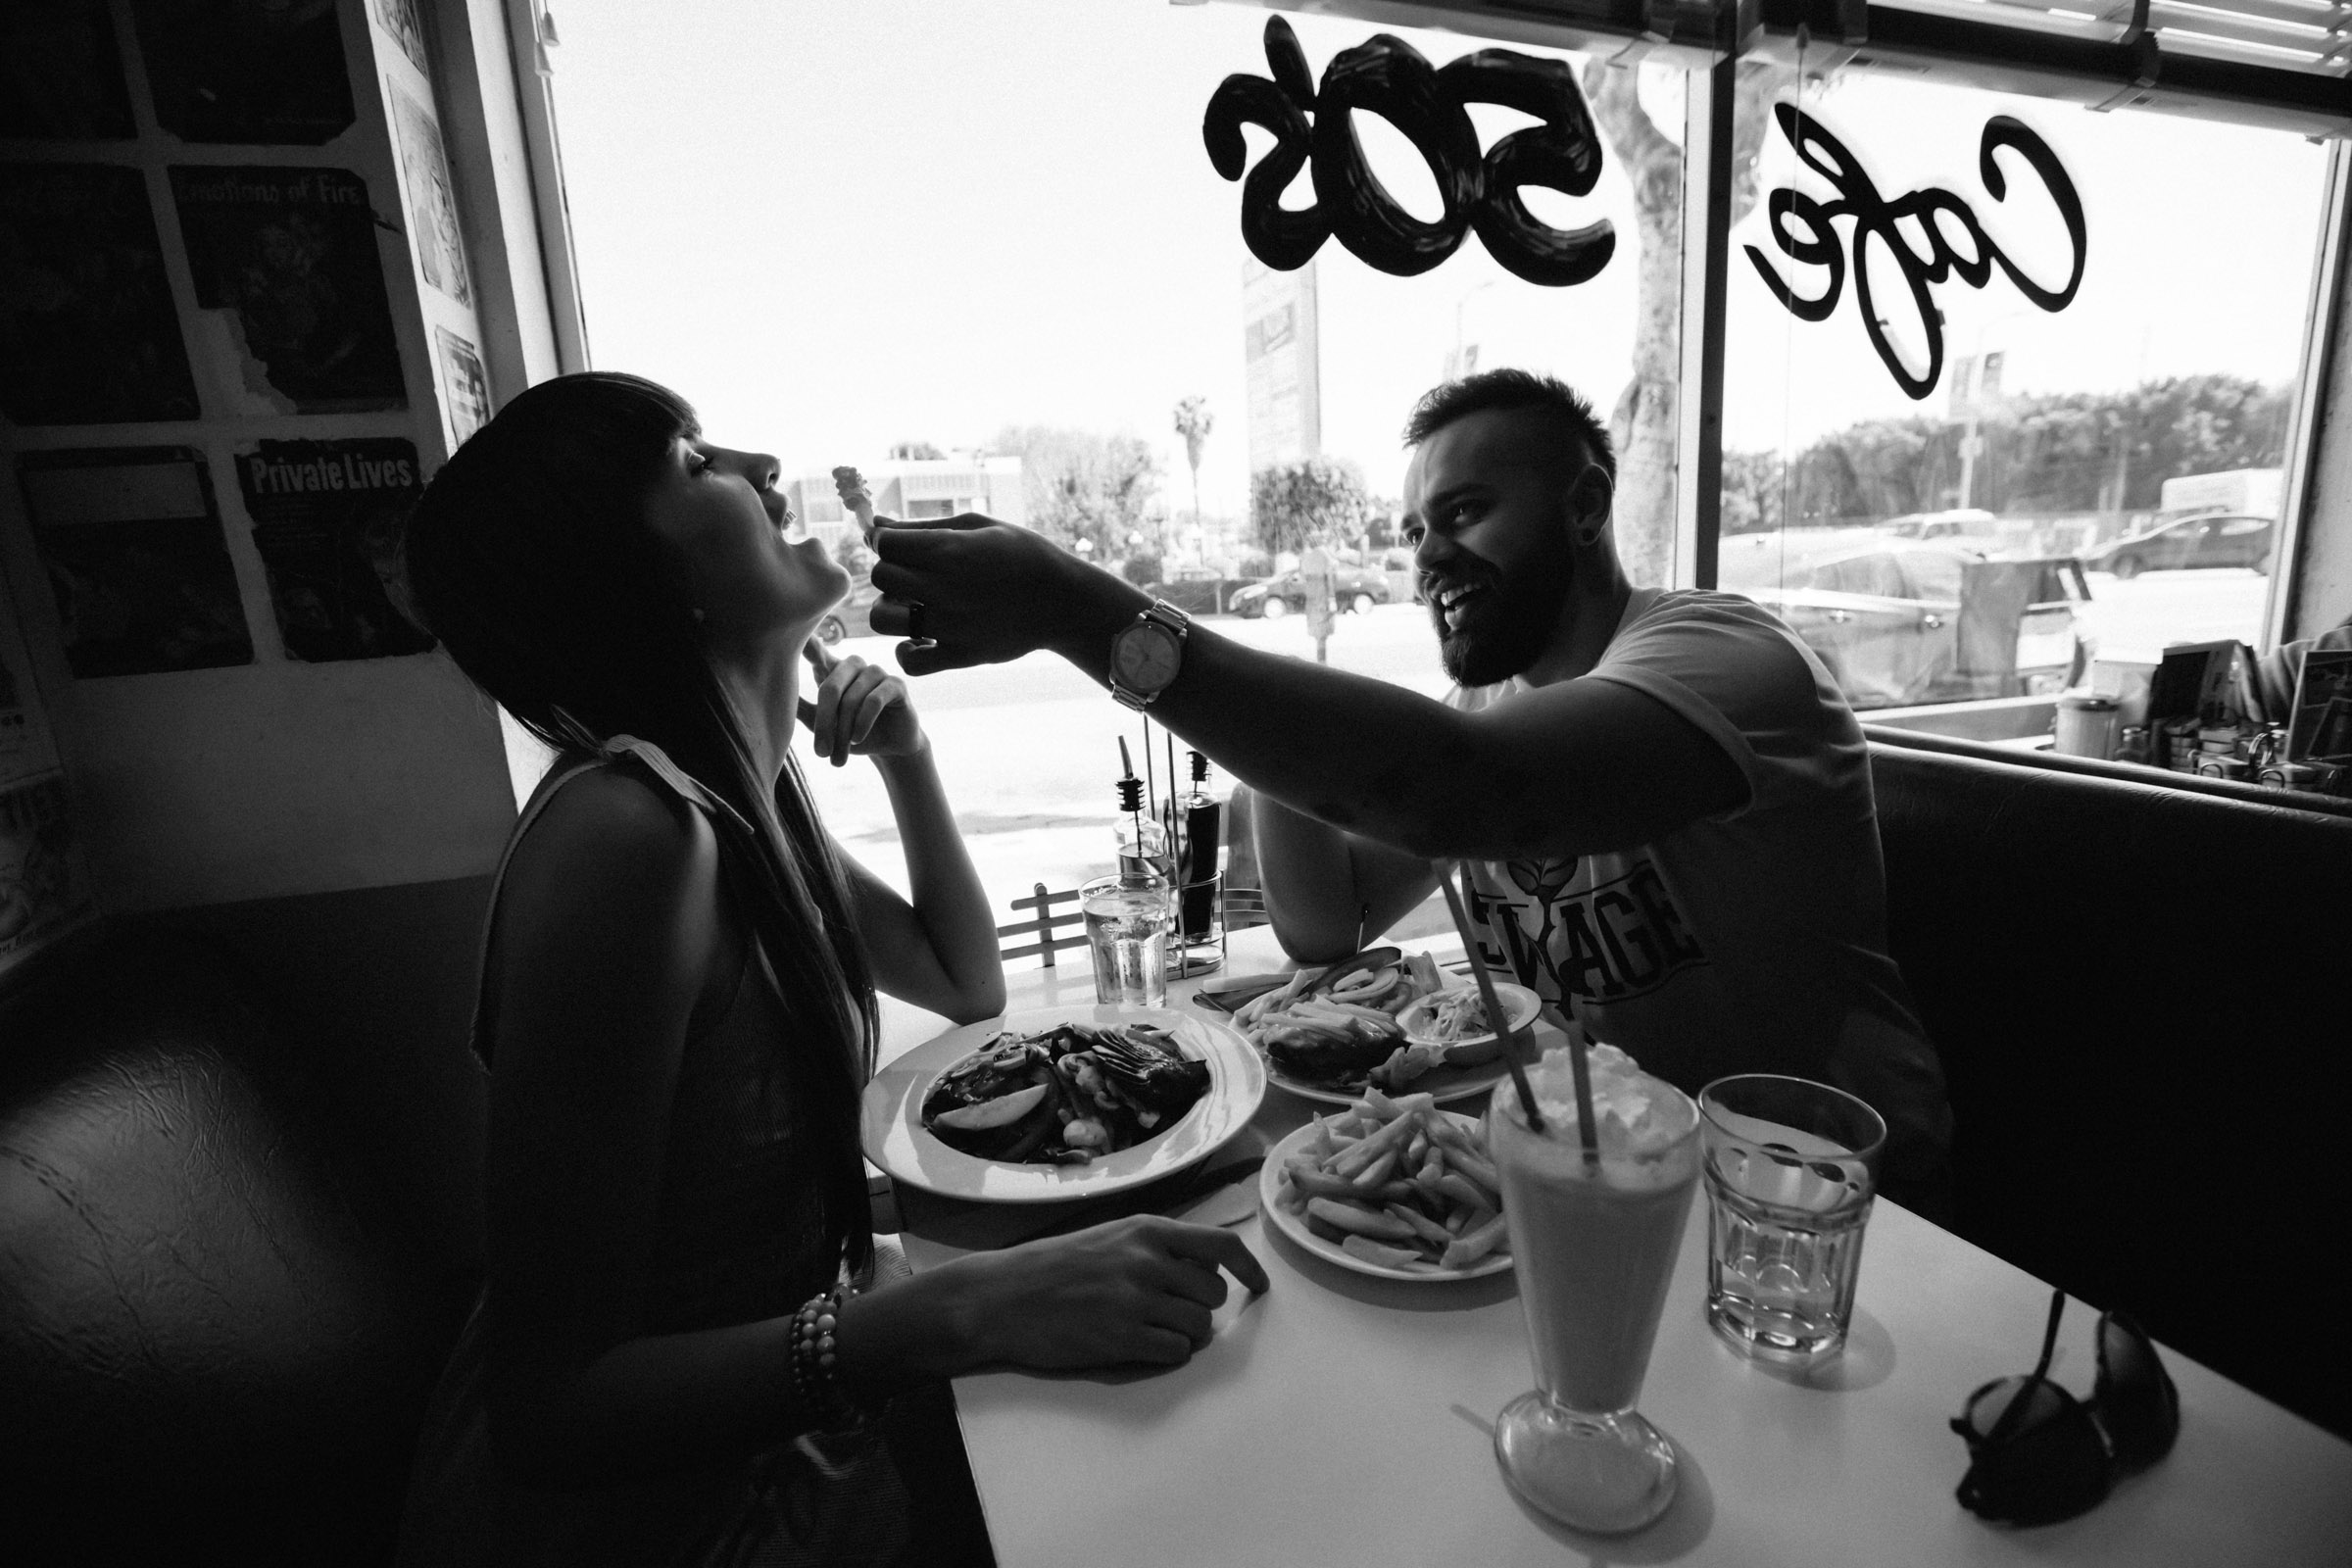 Funny shot of engagement in a cafe, phot